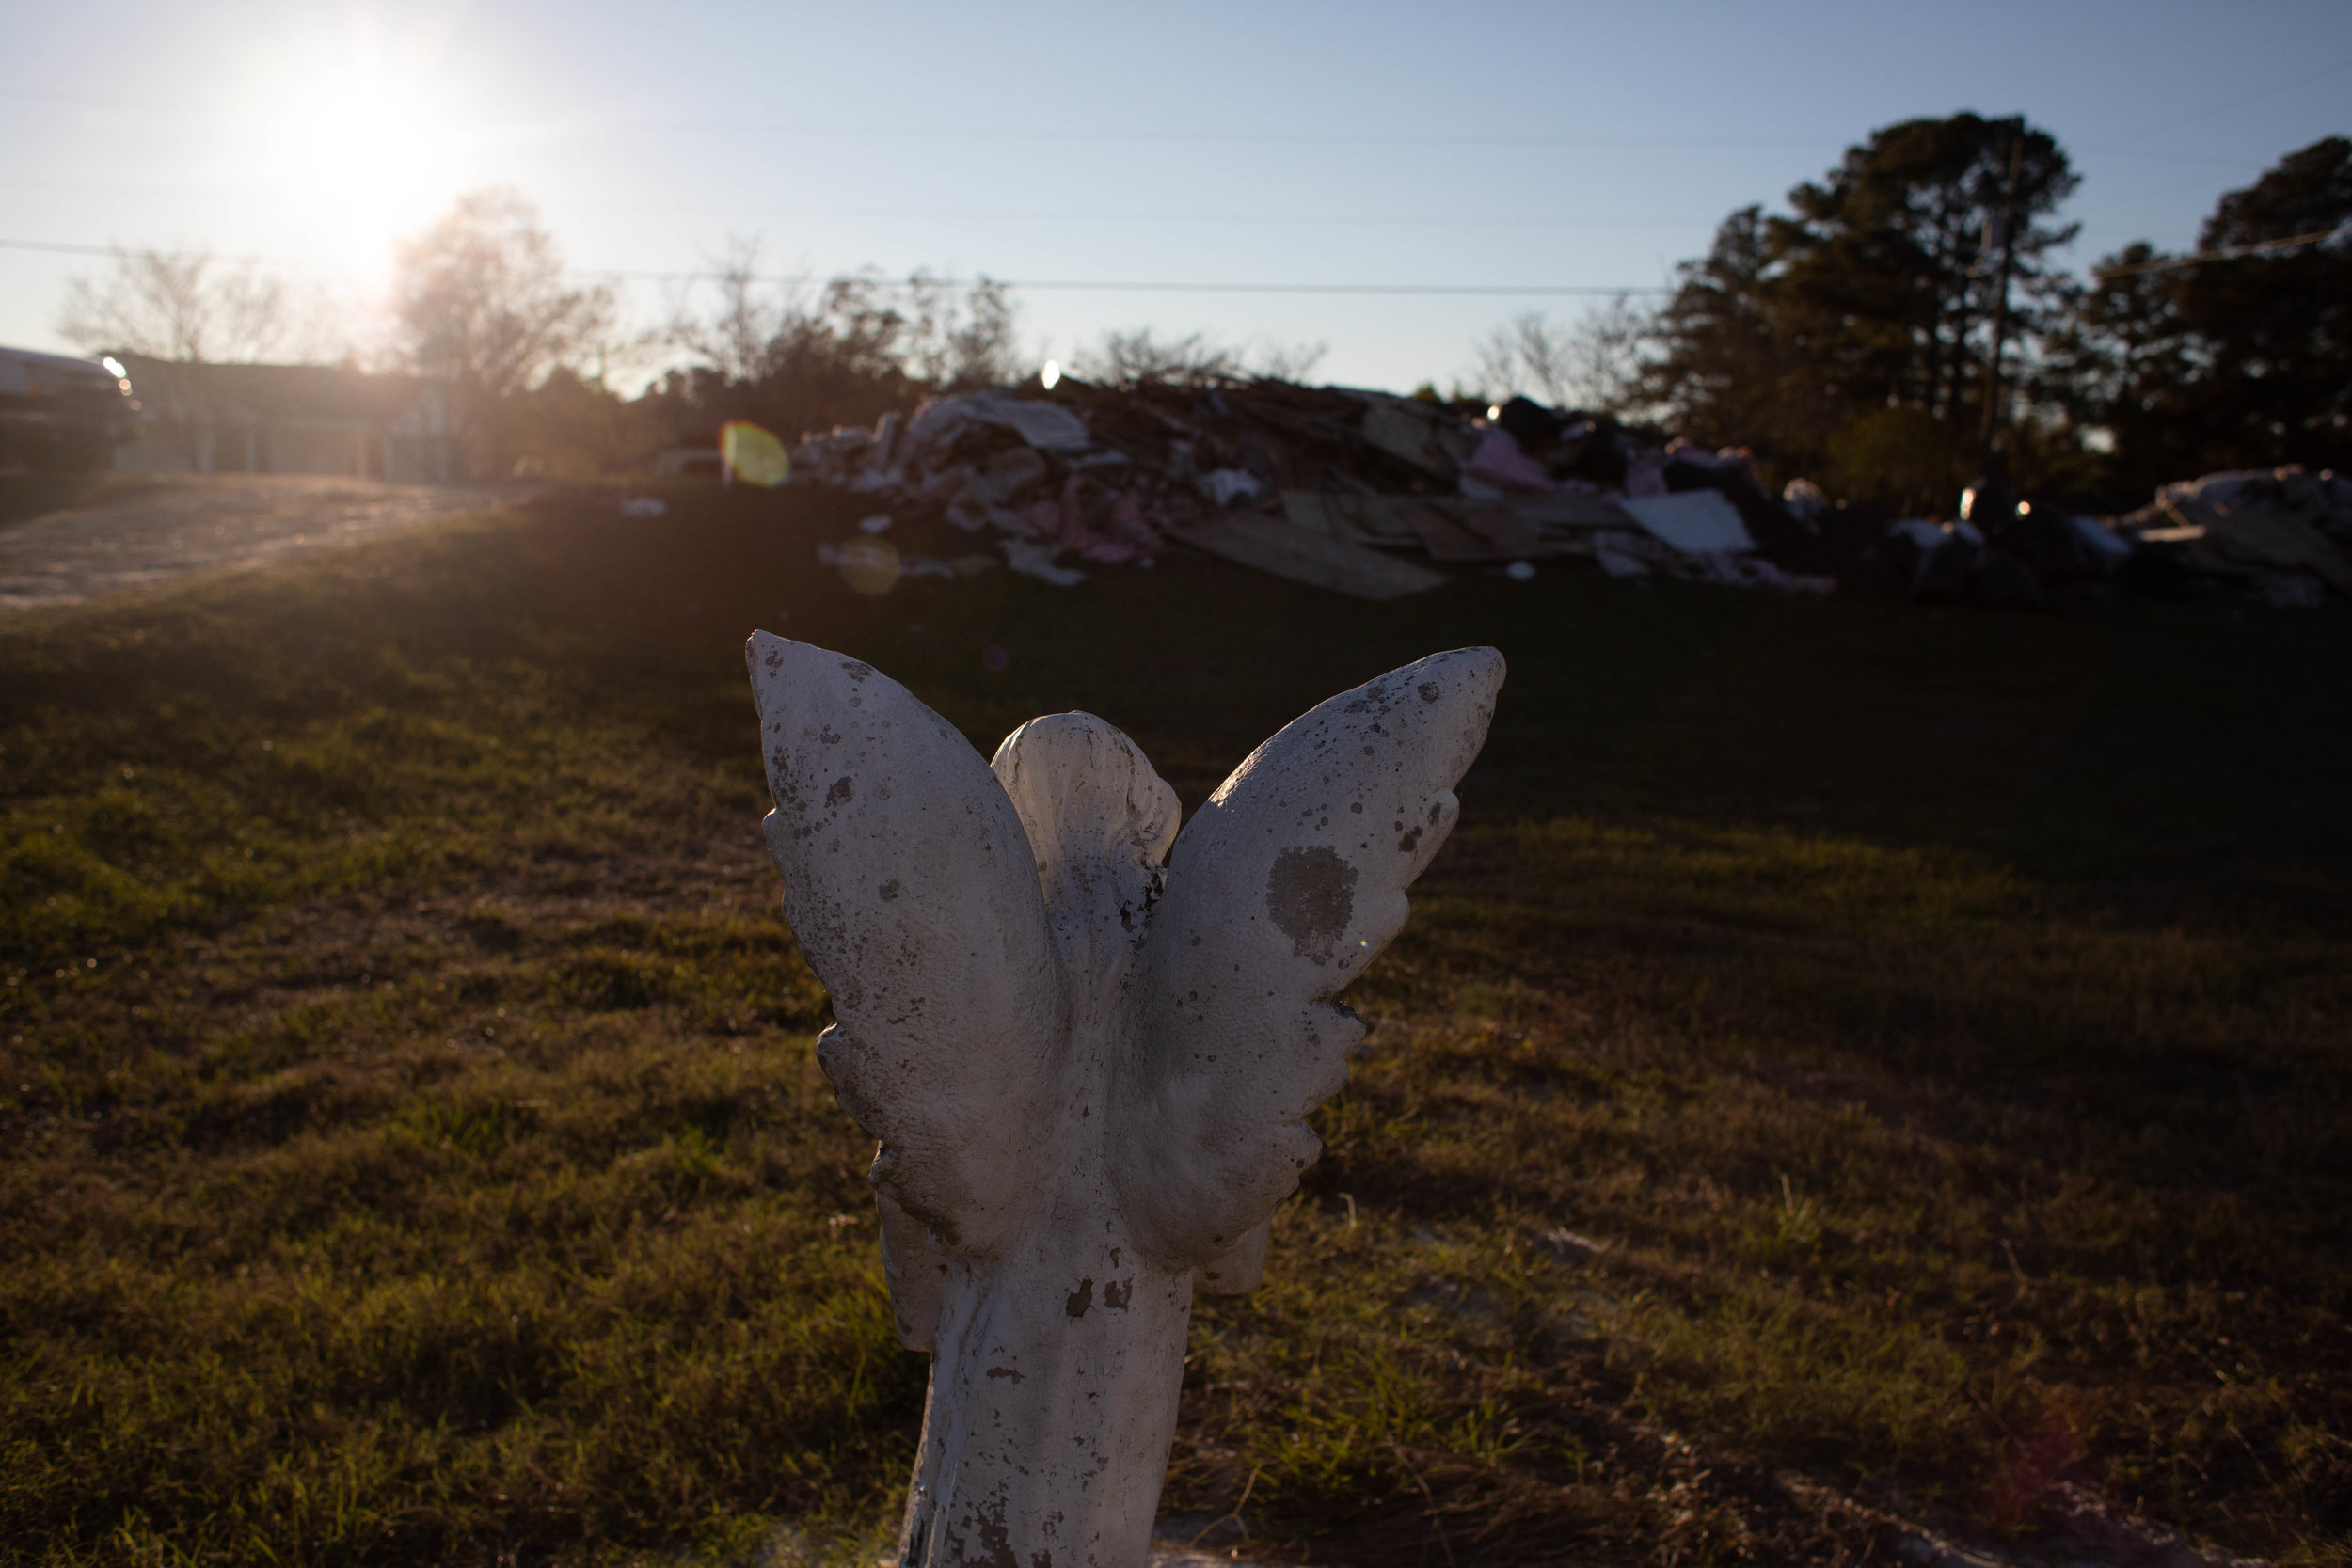 """An angel statue that Campbell's mother, Margaret, bought before she passed around the same time as the Hurricane Matthew. """"My primary reason is not to go in the house and get paid because we get 00 dollars, but to be the hands and feet of Christ,"""" said Riggs. """"[With] every meal [or house we rebuild] we make sure they understand we are doing this to share Christ [because] as much as they need money they need hope."""""""